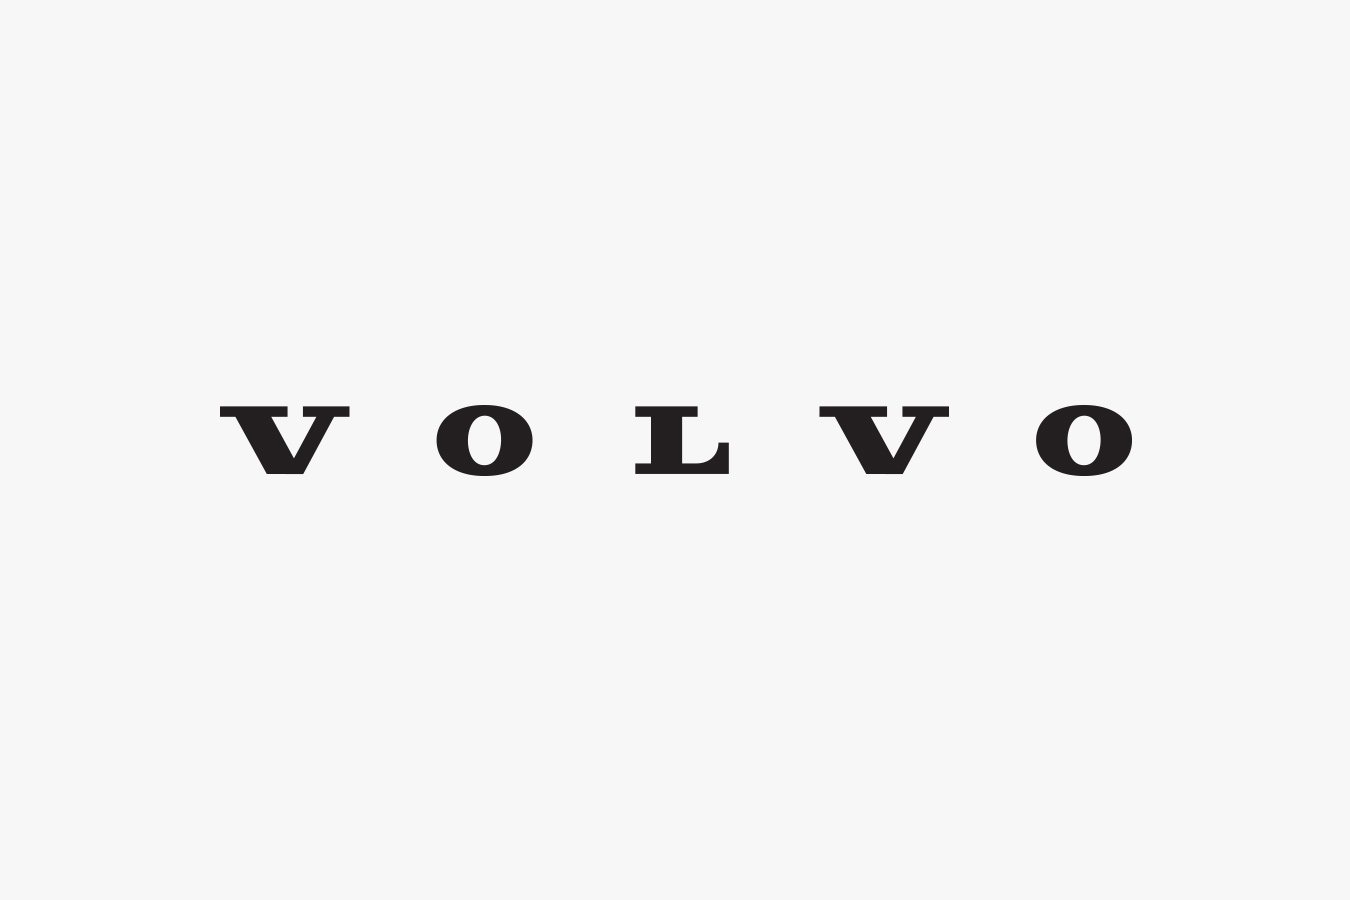 Connu Press Material - Logos - Volvo Car Group Global Media Newsroom UK34